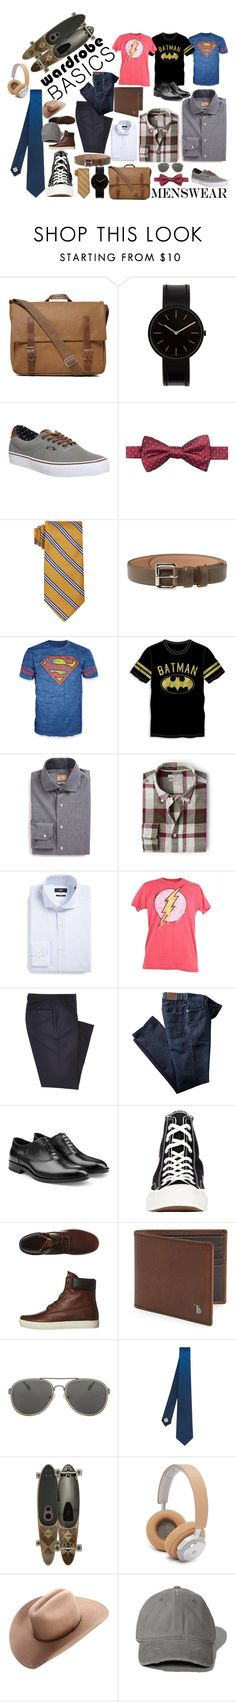 """Menswear"" by marina-monego ❤ liked on Polyvore featuring Ally Capellino, Uniform Wares, Vans, Ryan Seacrest Distinction, Brooks Brothers, A.P.C., Bioworld, Gitman Bros., MANGO and BOSS Hugo Boss"